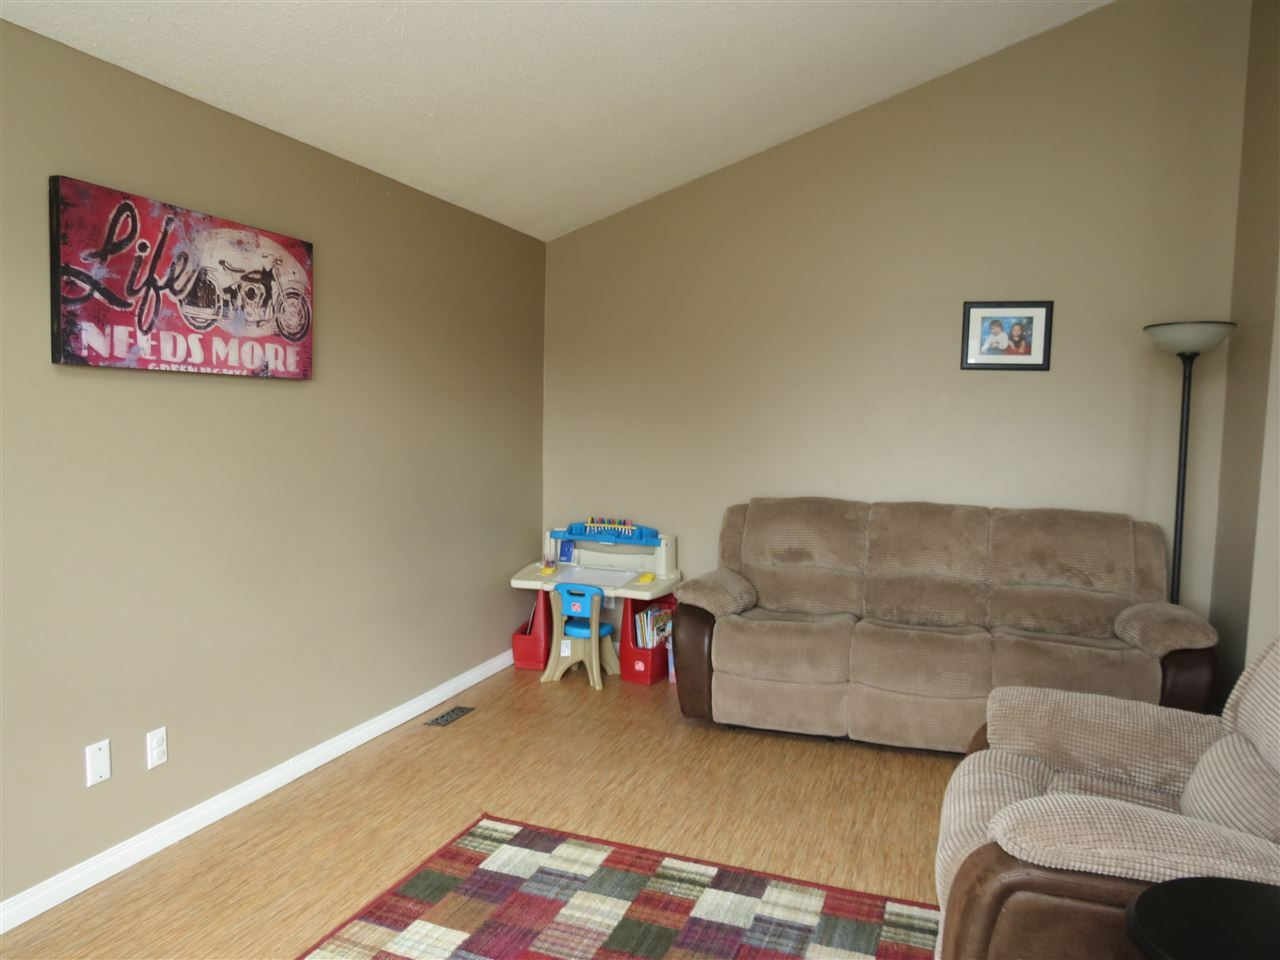 Photo 8: 9907 90 Street: Morinville House for sale : MLS(r) # E4057678